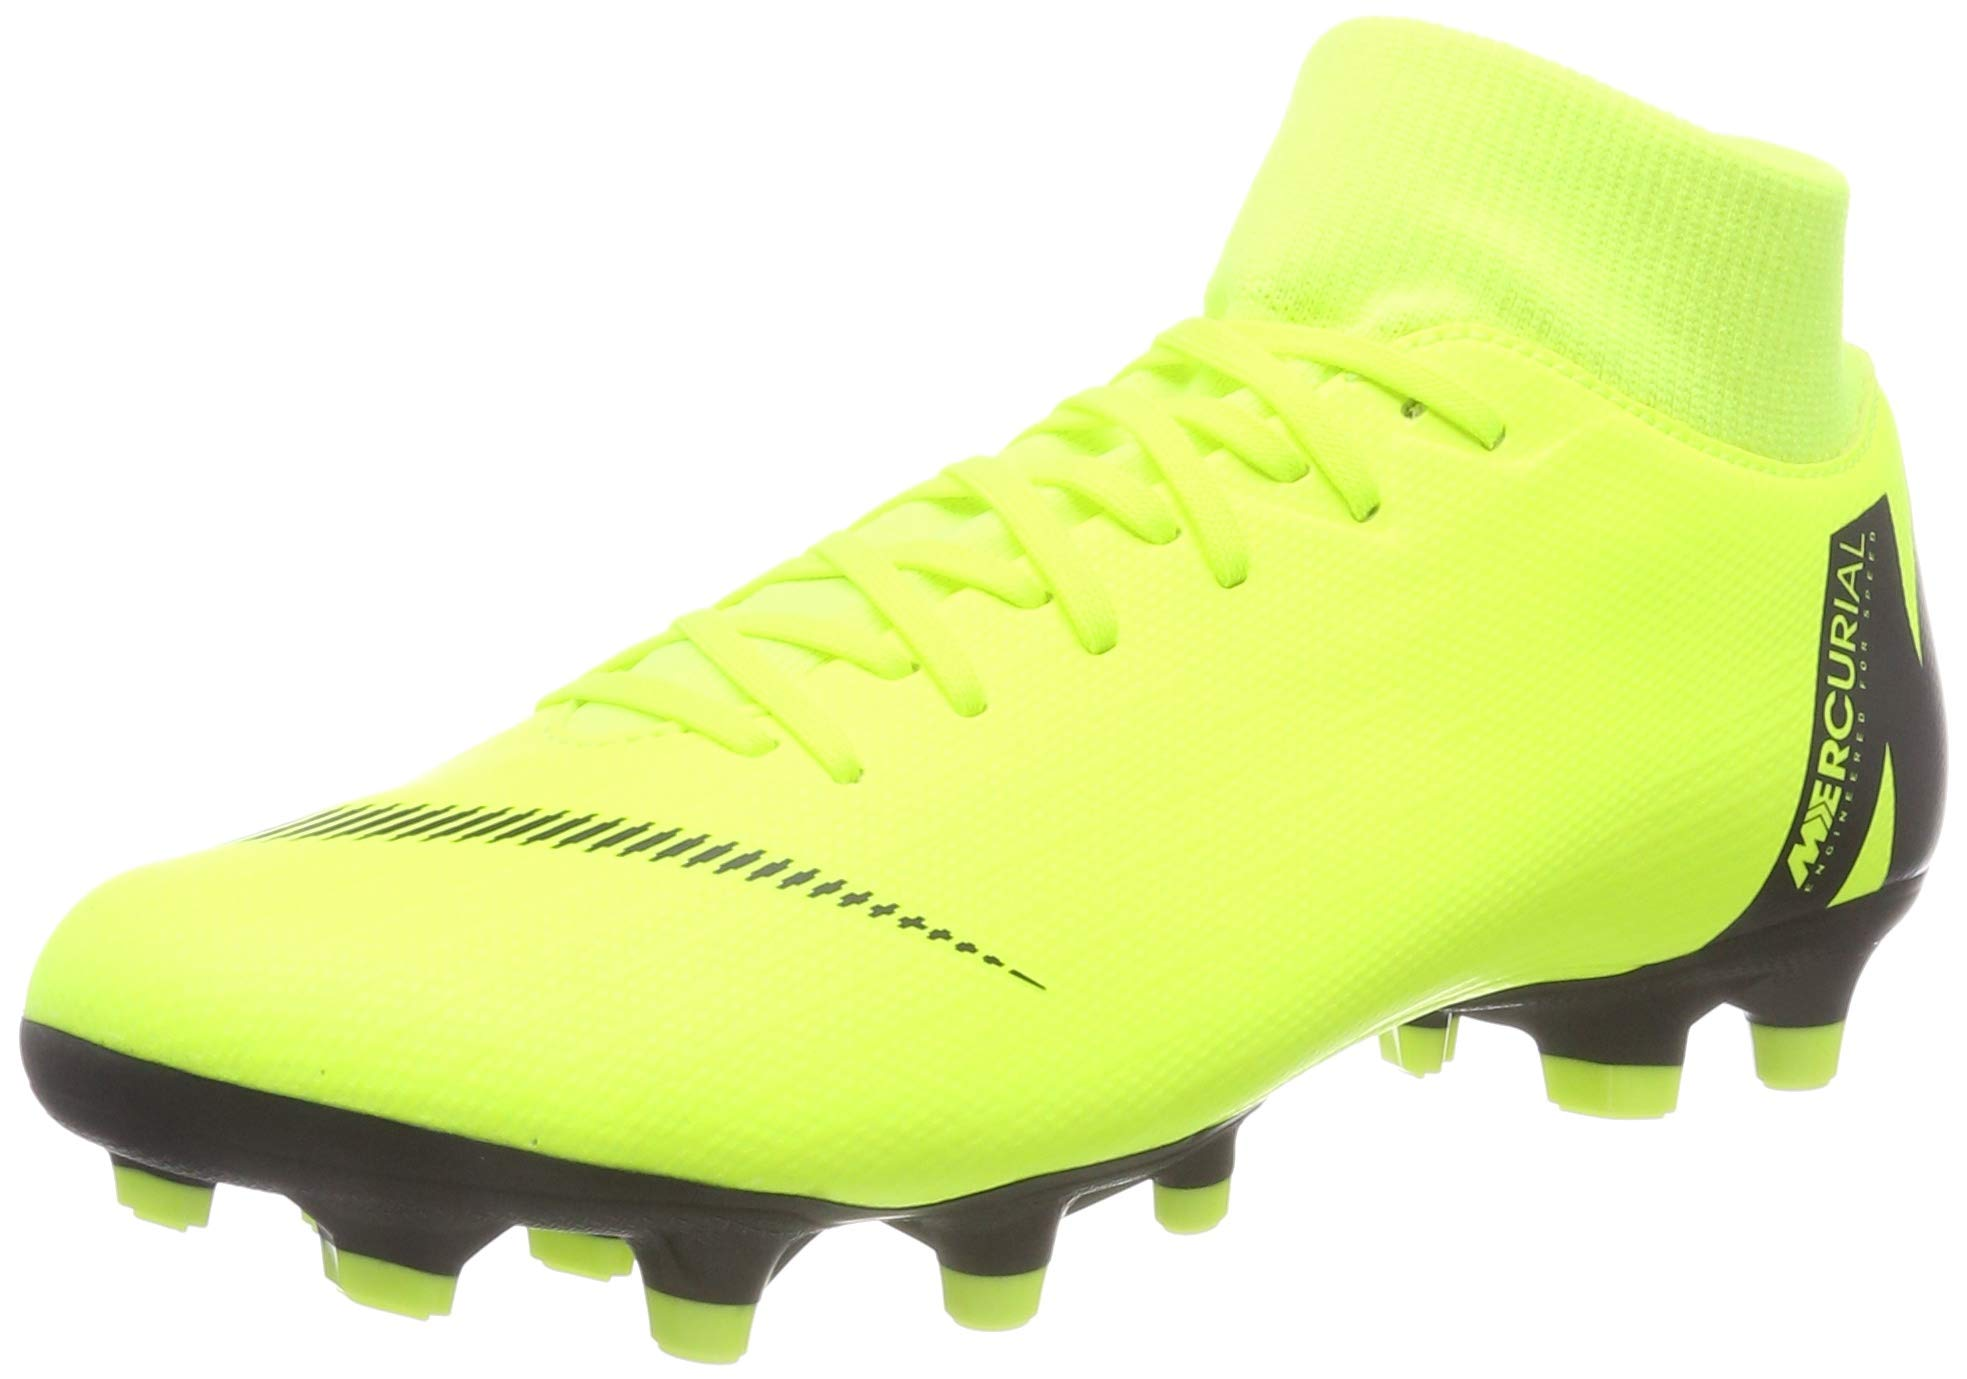 181b7952fd5 Galleon - Nike Men s Soccer Mercurial Superfly VI Academy Multi Ground  Cleats (12 M US)